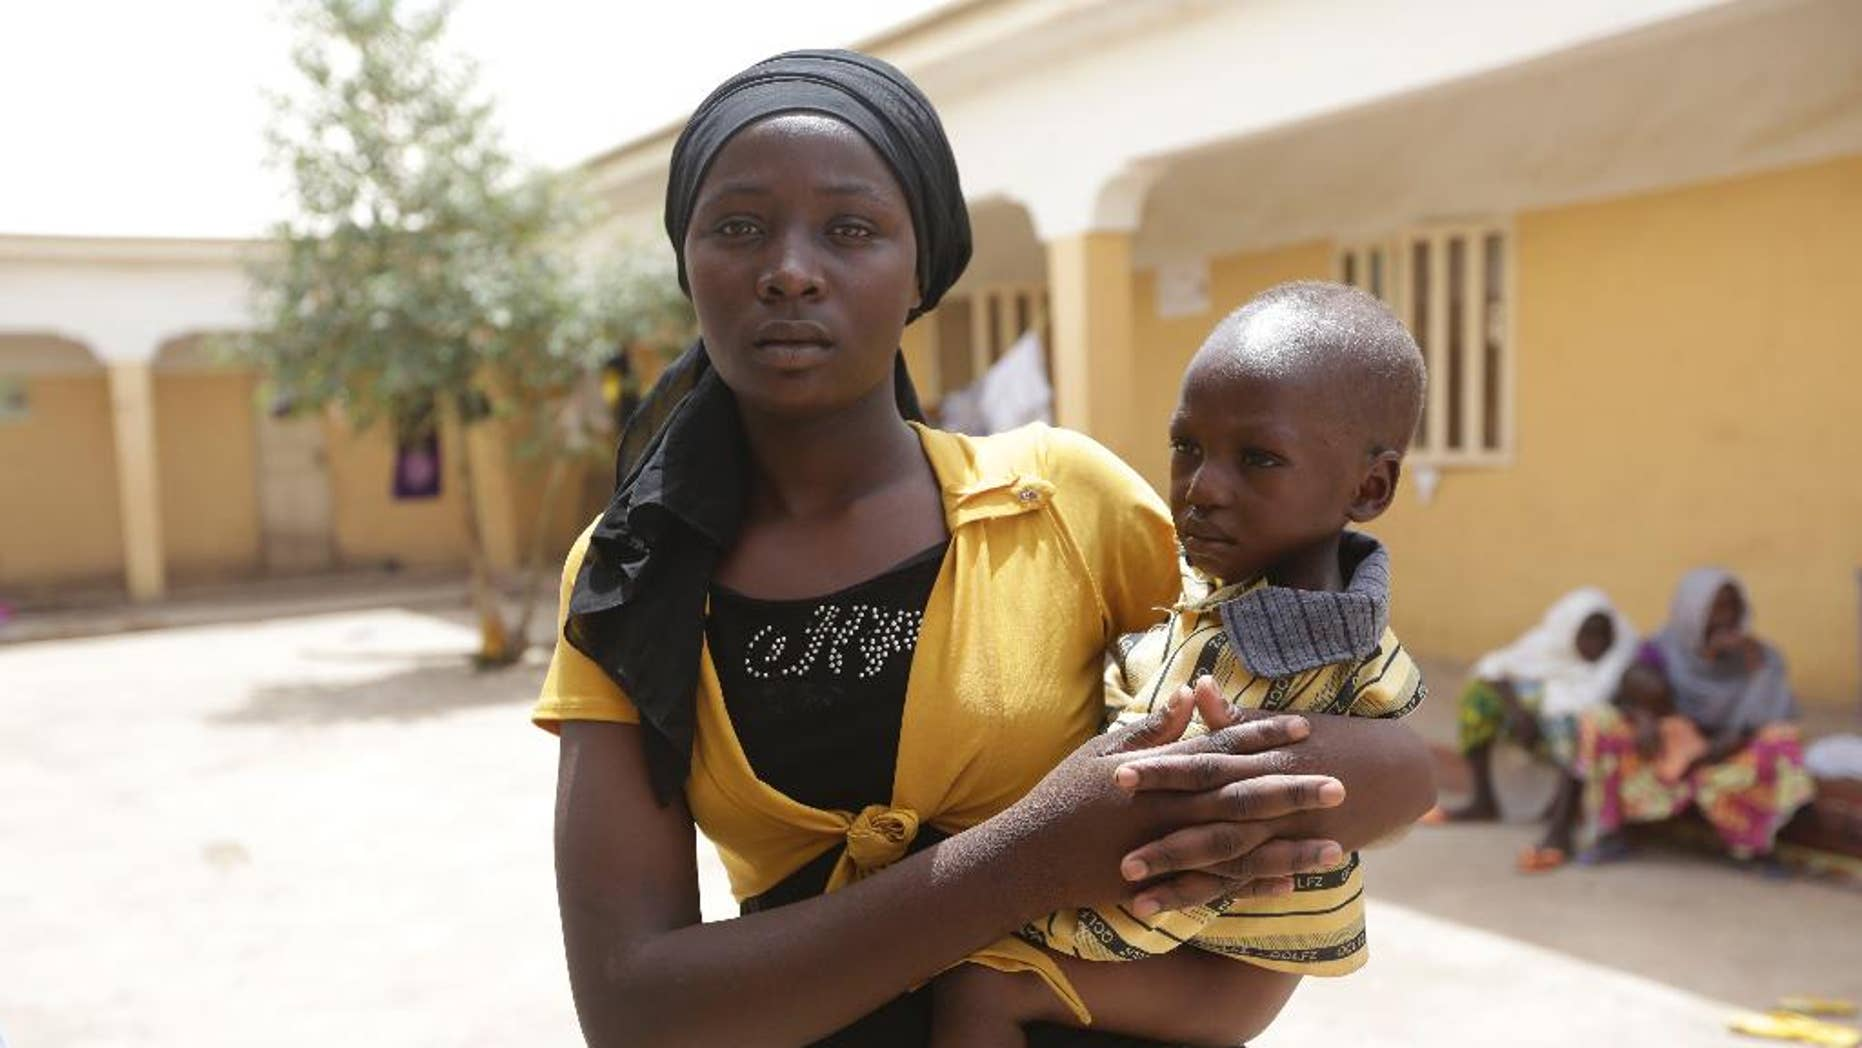 FILE - In this Monday, May 4, 2015 file photo, Binta Ibrahim holds an unidentified child after she described told how at 16 she rescued three children aged between 2 and 4, cared for them during a year of captivity under Boko Haram and brought them to the safety of the refugee camp in Yola. All 275 women, girls and children rescued from Boko Haram and taken to the safety of a northeast Nigerian refugee camp have been taken into military custody amid suspicions that some are aiding the Islamic extremists, a camp official and a Nigerian military intelligence officer said Wednesday May 20, 2015. (AP Photo/Sunday Alamba, File)